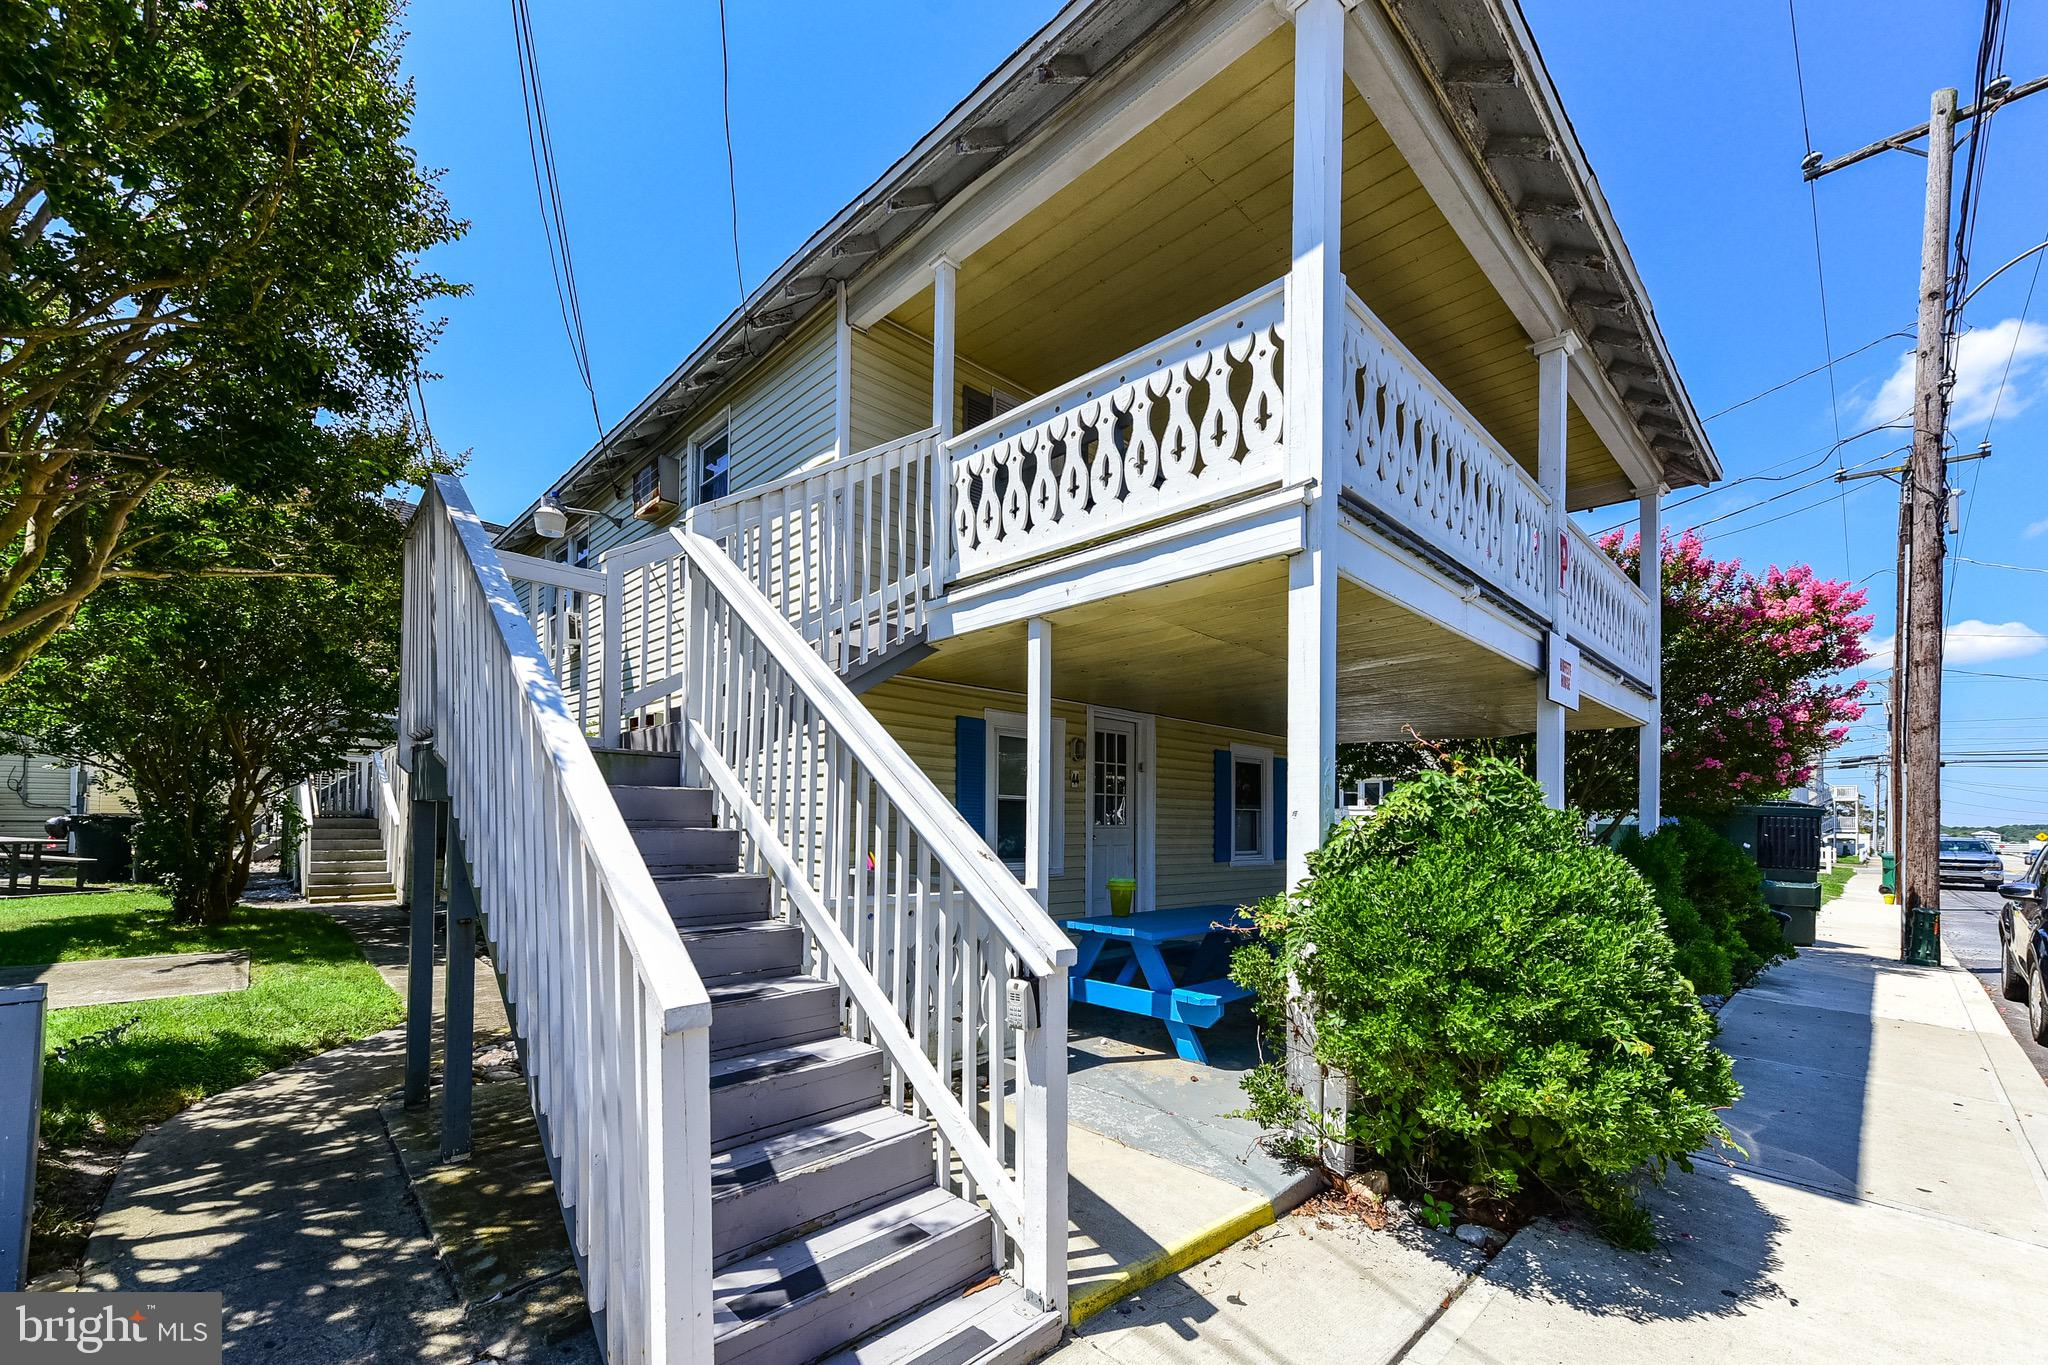 Large 3 Bedroom, 2 Bath   in the Parrot Bay Condo Association, Pool, Parking, 2 Blocks from the Boardwalk, Located on the Second Floor,  Huge Covered Front Porch is Perfect for Summer Evenings and Crab Feasts,  Super Clean Unit in very good condition, Outstanding Rental Potential,